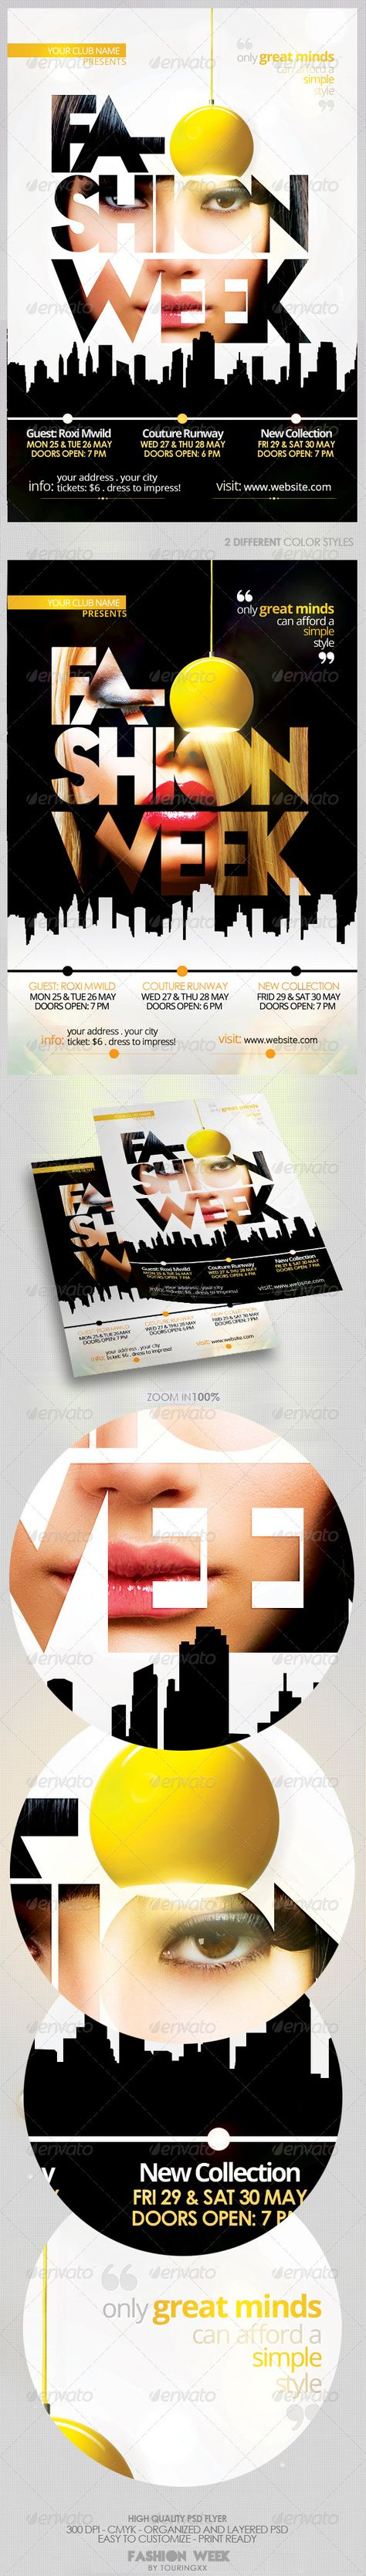 Fashion Week Vol 2 Flyer Template / $6. ***This flyer is perfect for the promotion of Fashion Events, Club Parties, Musicals, Festivals, Shops/Boutiques, New Collections, Concerts or Whatever You Want!.***